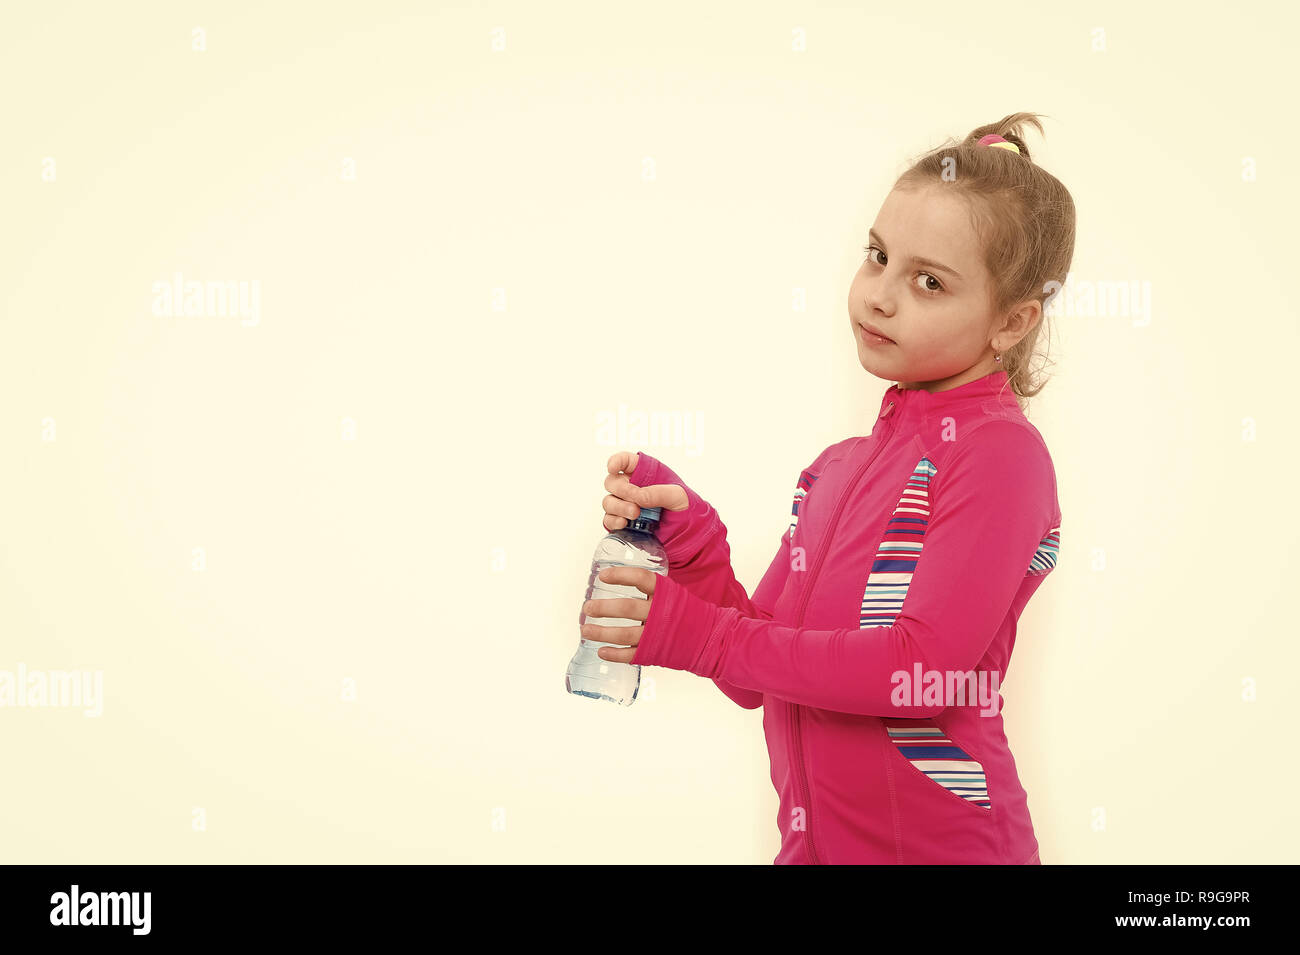 Child feel thirsty in pink suit isolated on white. Girl with bottle of drinking water. Health and healthy drink. Dehydration, thirst concept. Fluid balance, hydration, copy space - Stock Image